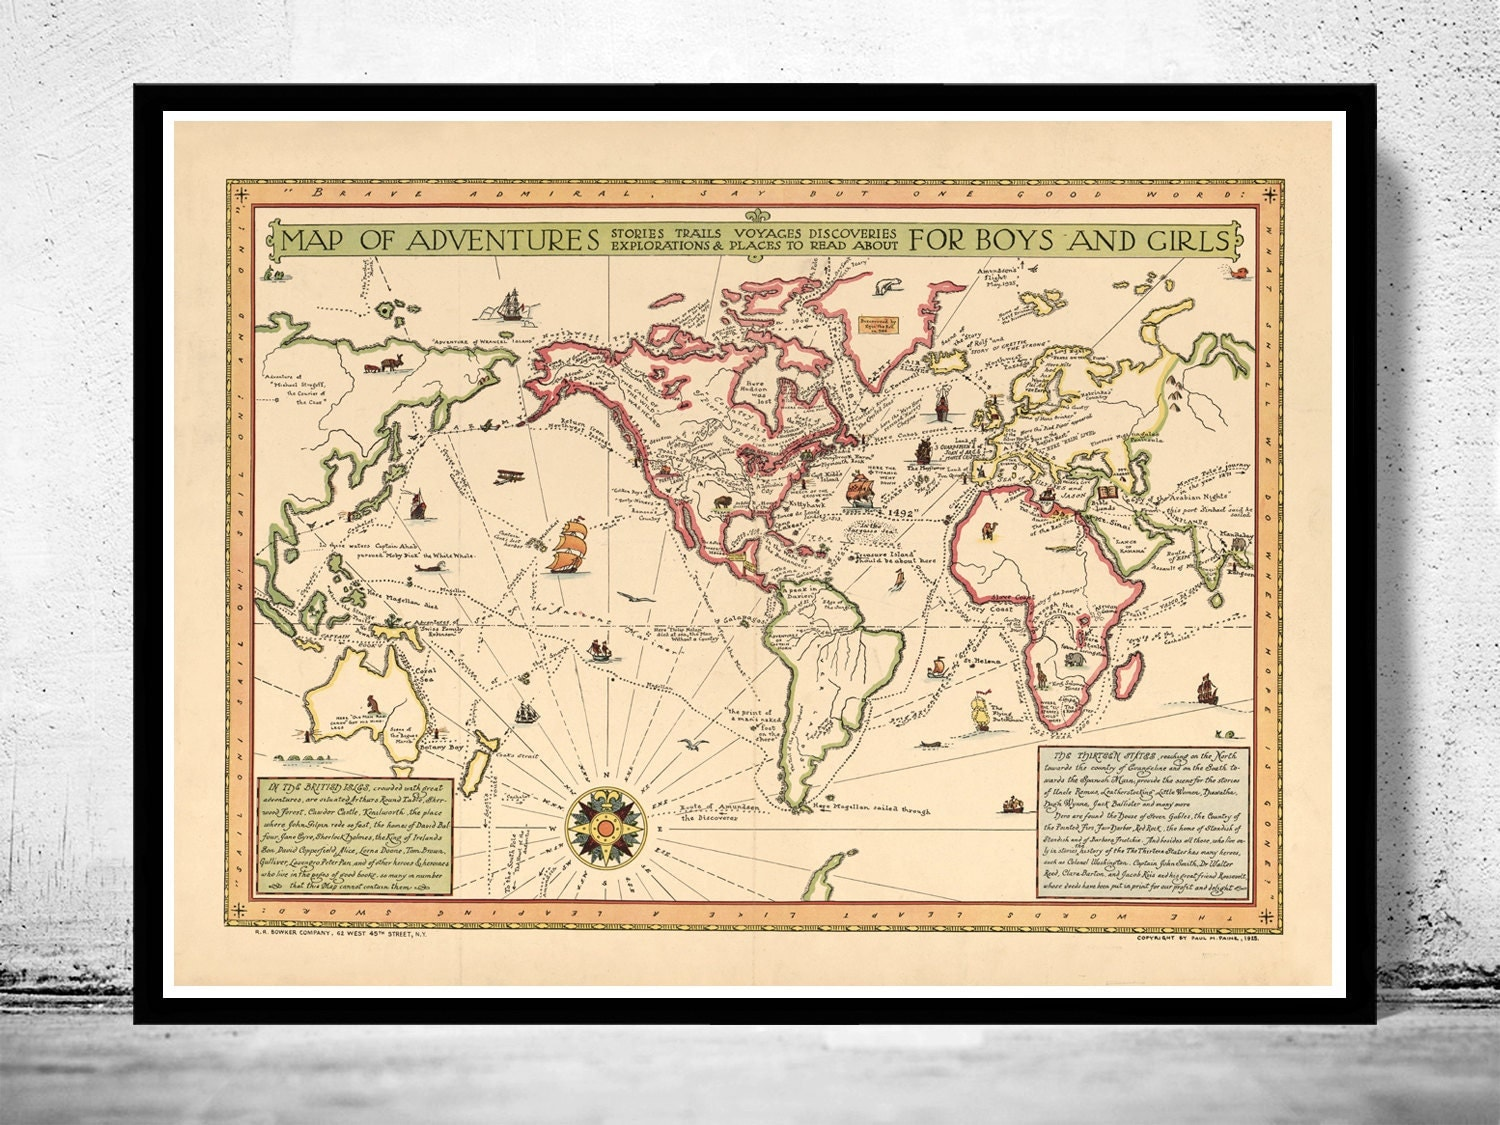 vintage world atlas related - photo #15